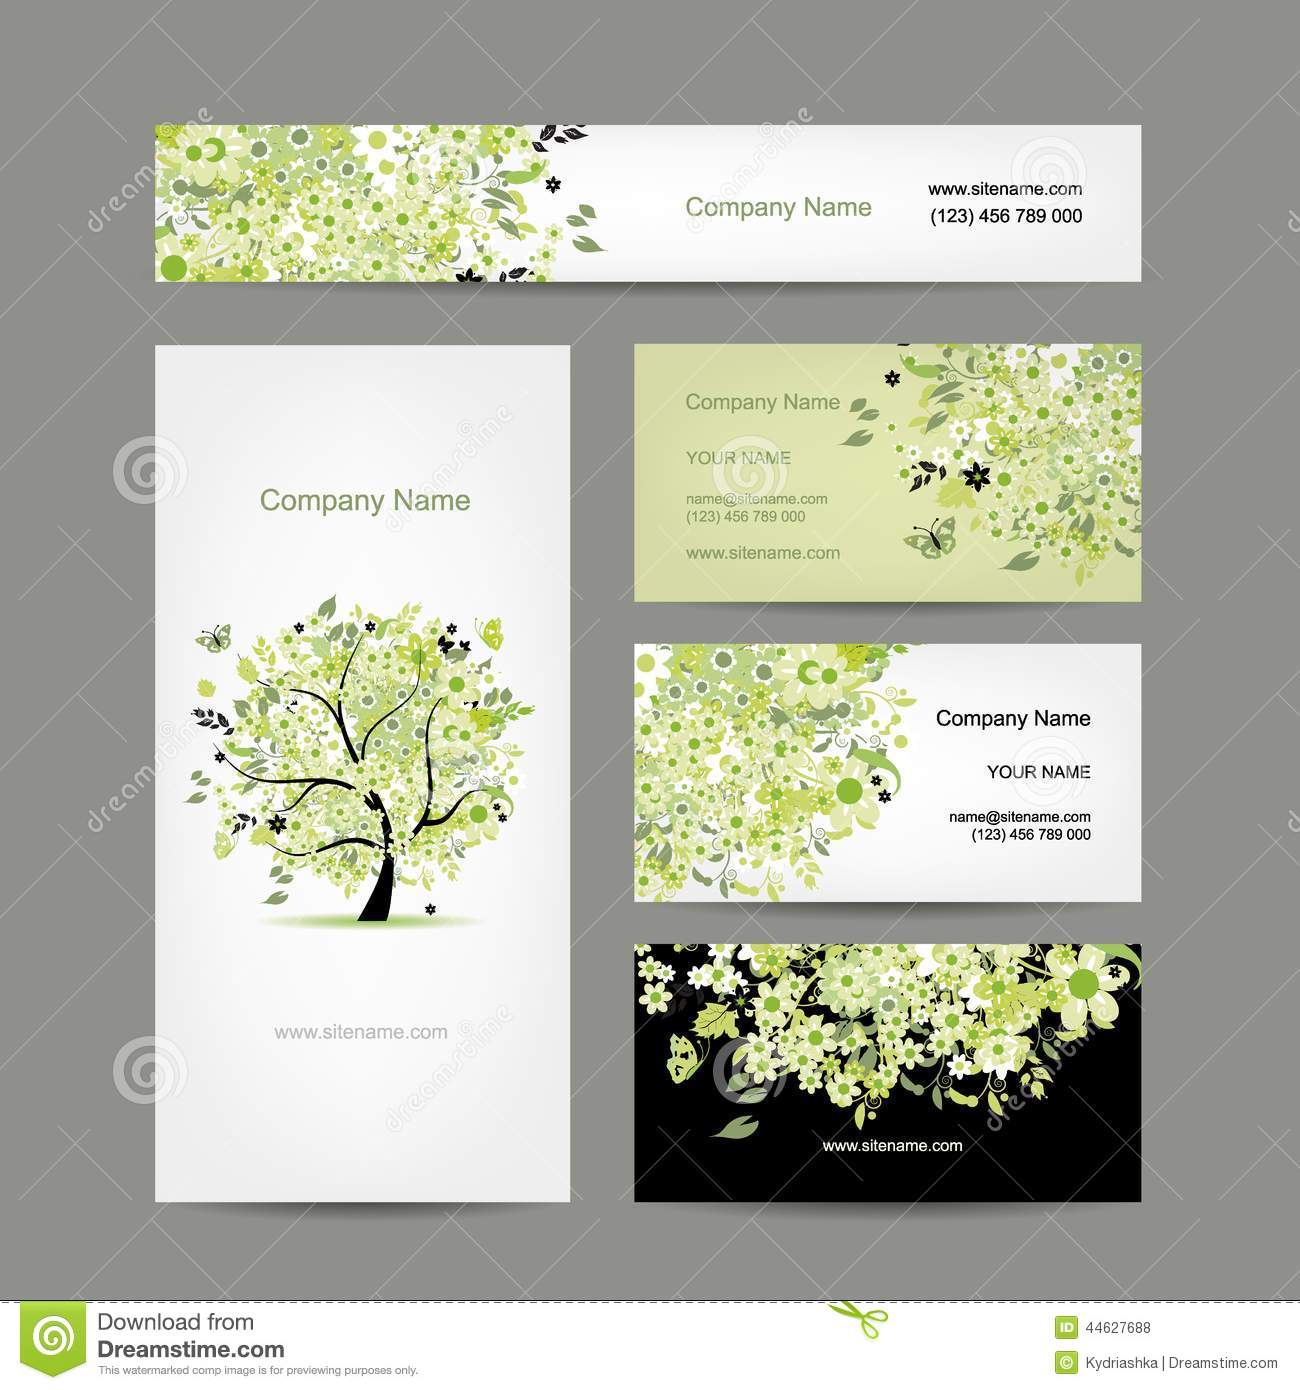 Business cards design spring tree floral stock vector image business cards design spring tree floral magicingreecefo Choice Image